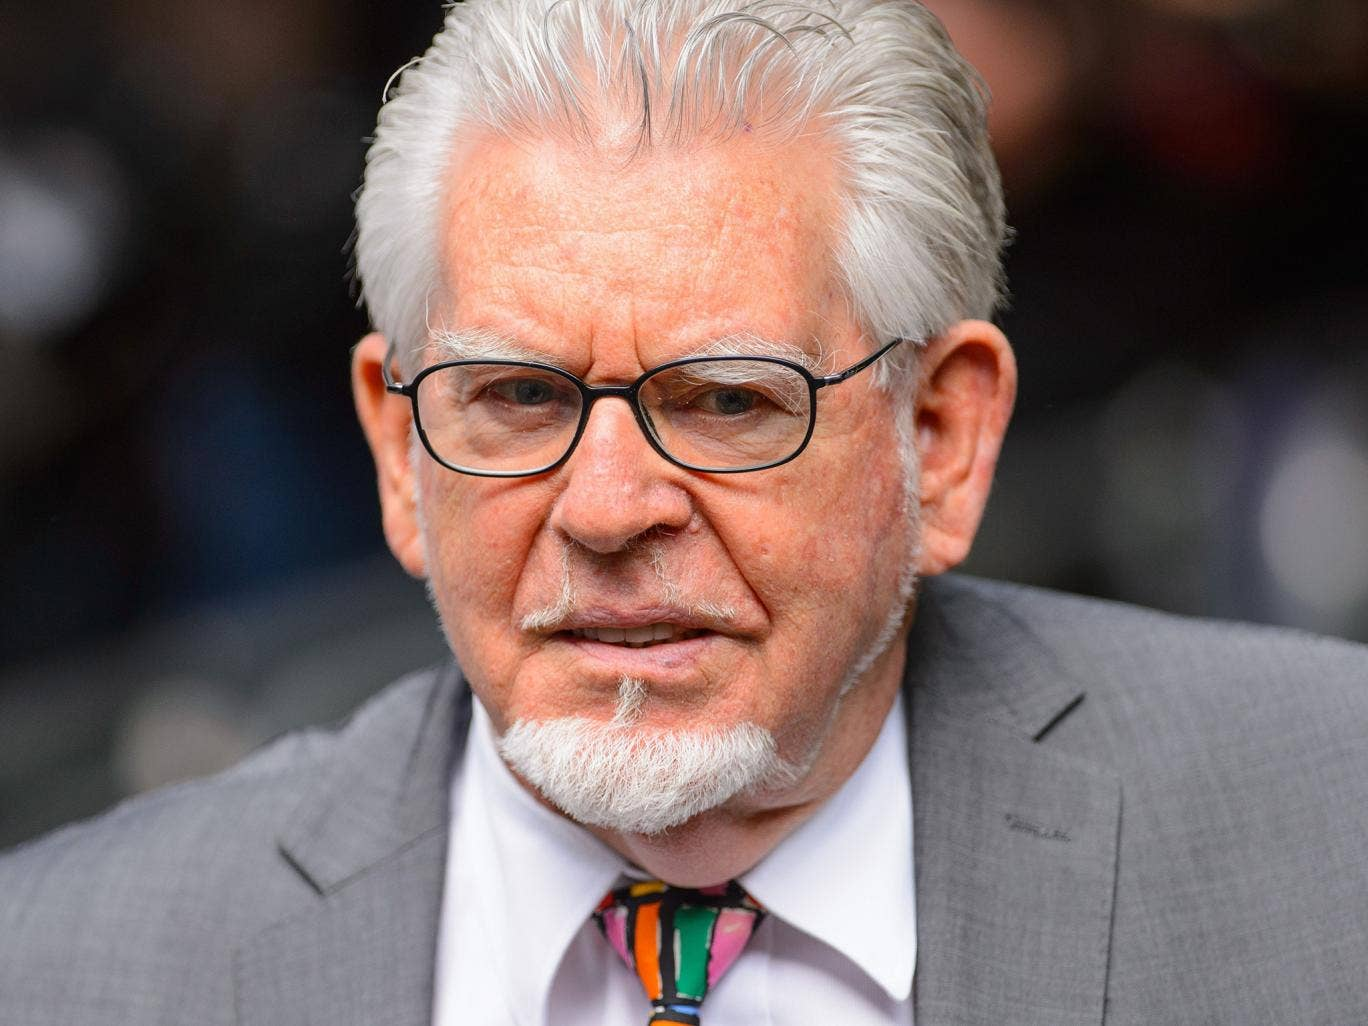 Rolf Harris arrives at Southwark Crown Court, London before the veteran entertainer is sentenced for a string of indecent assaults